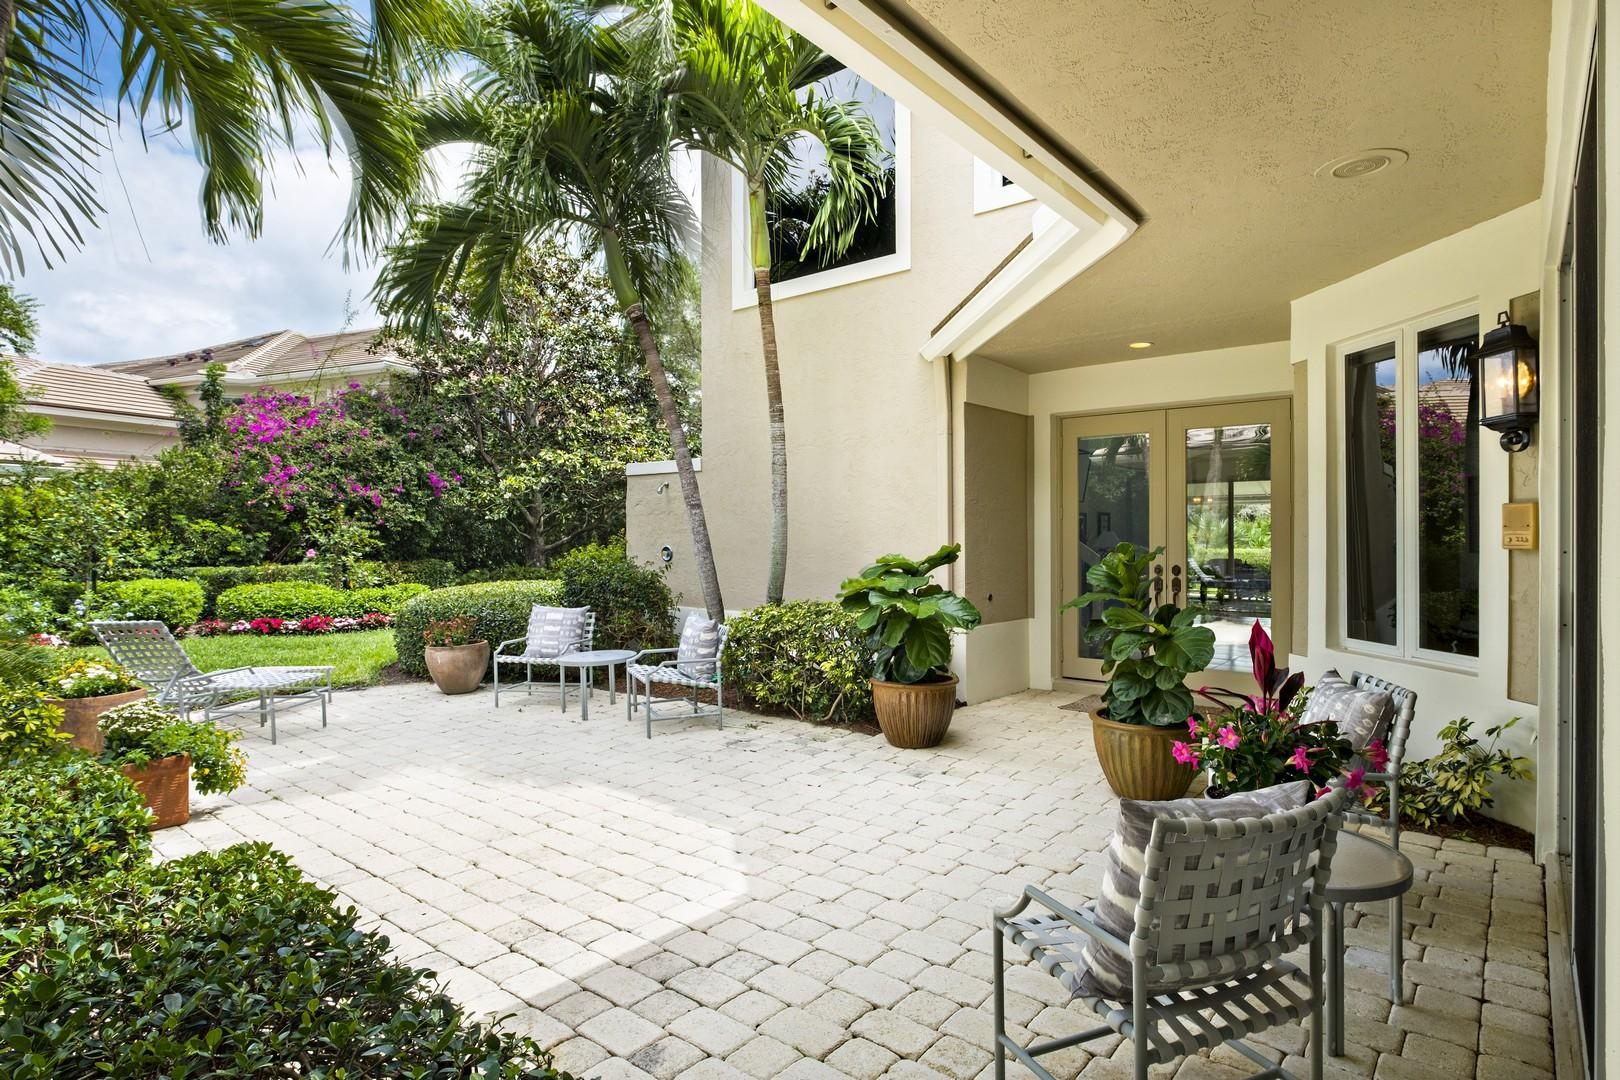 Home for sale in Jupiter Hills Tequesta Florida